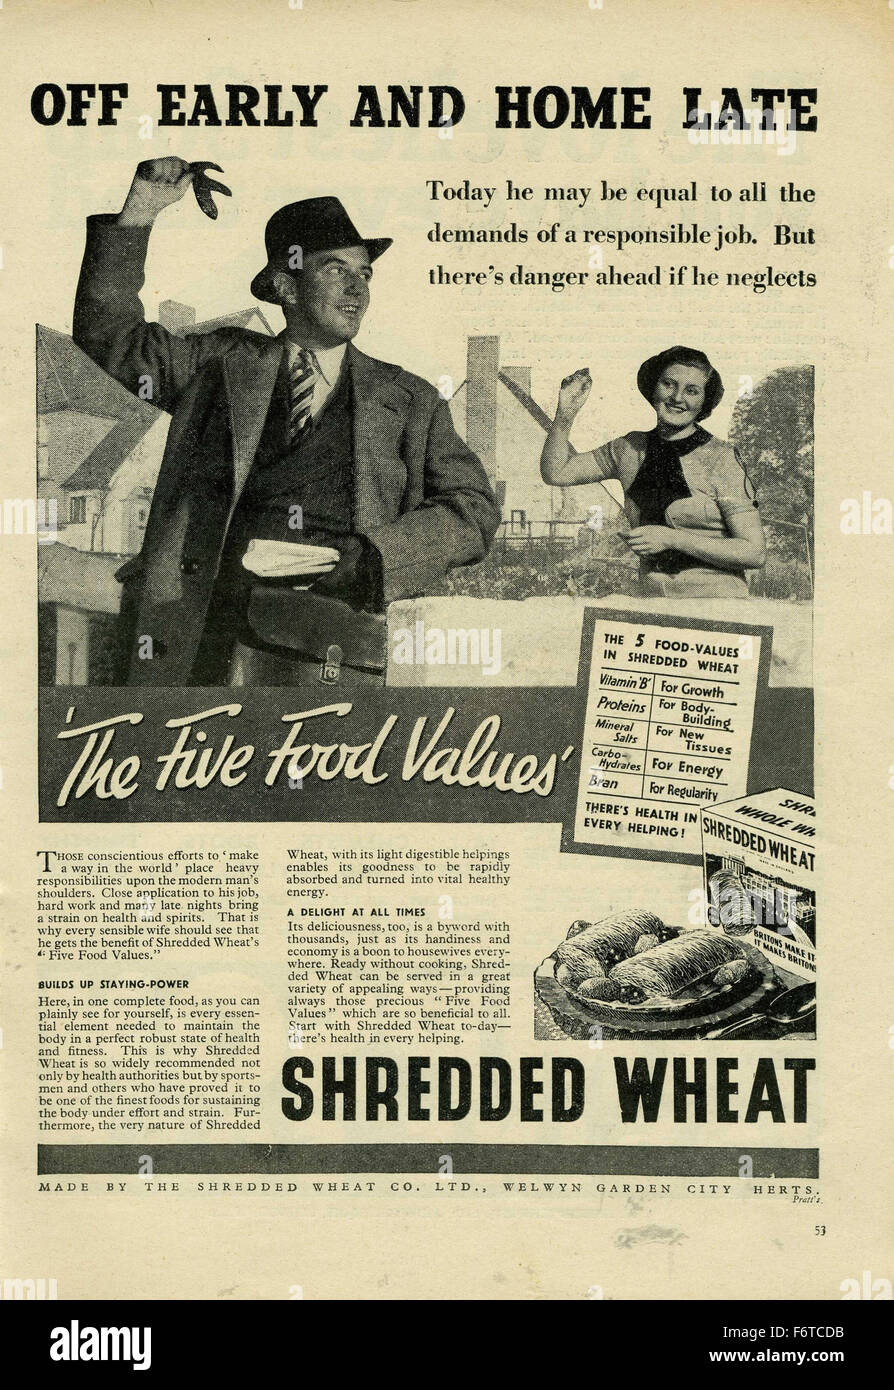 Vintage Shredded Wheat 1938 Advert Off early and home late - Stock Image